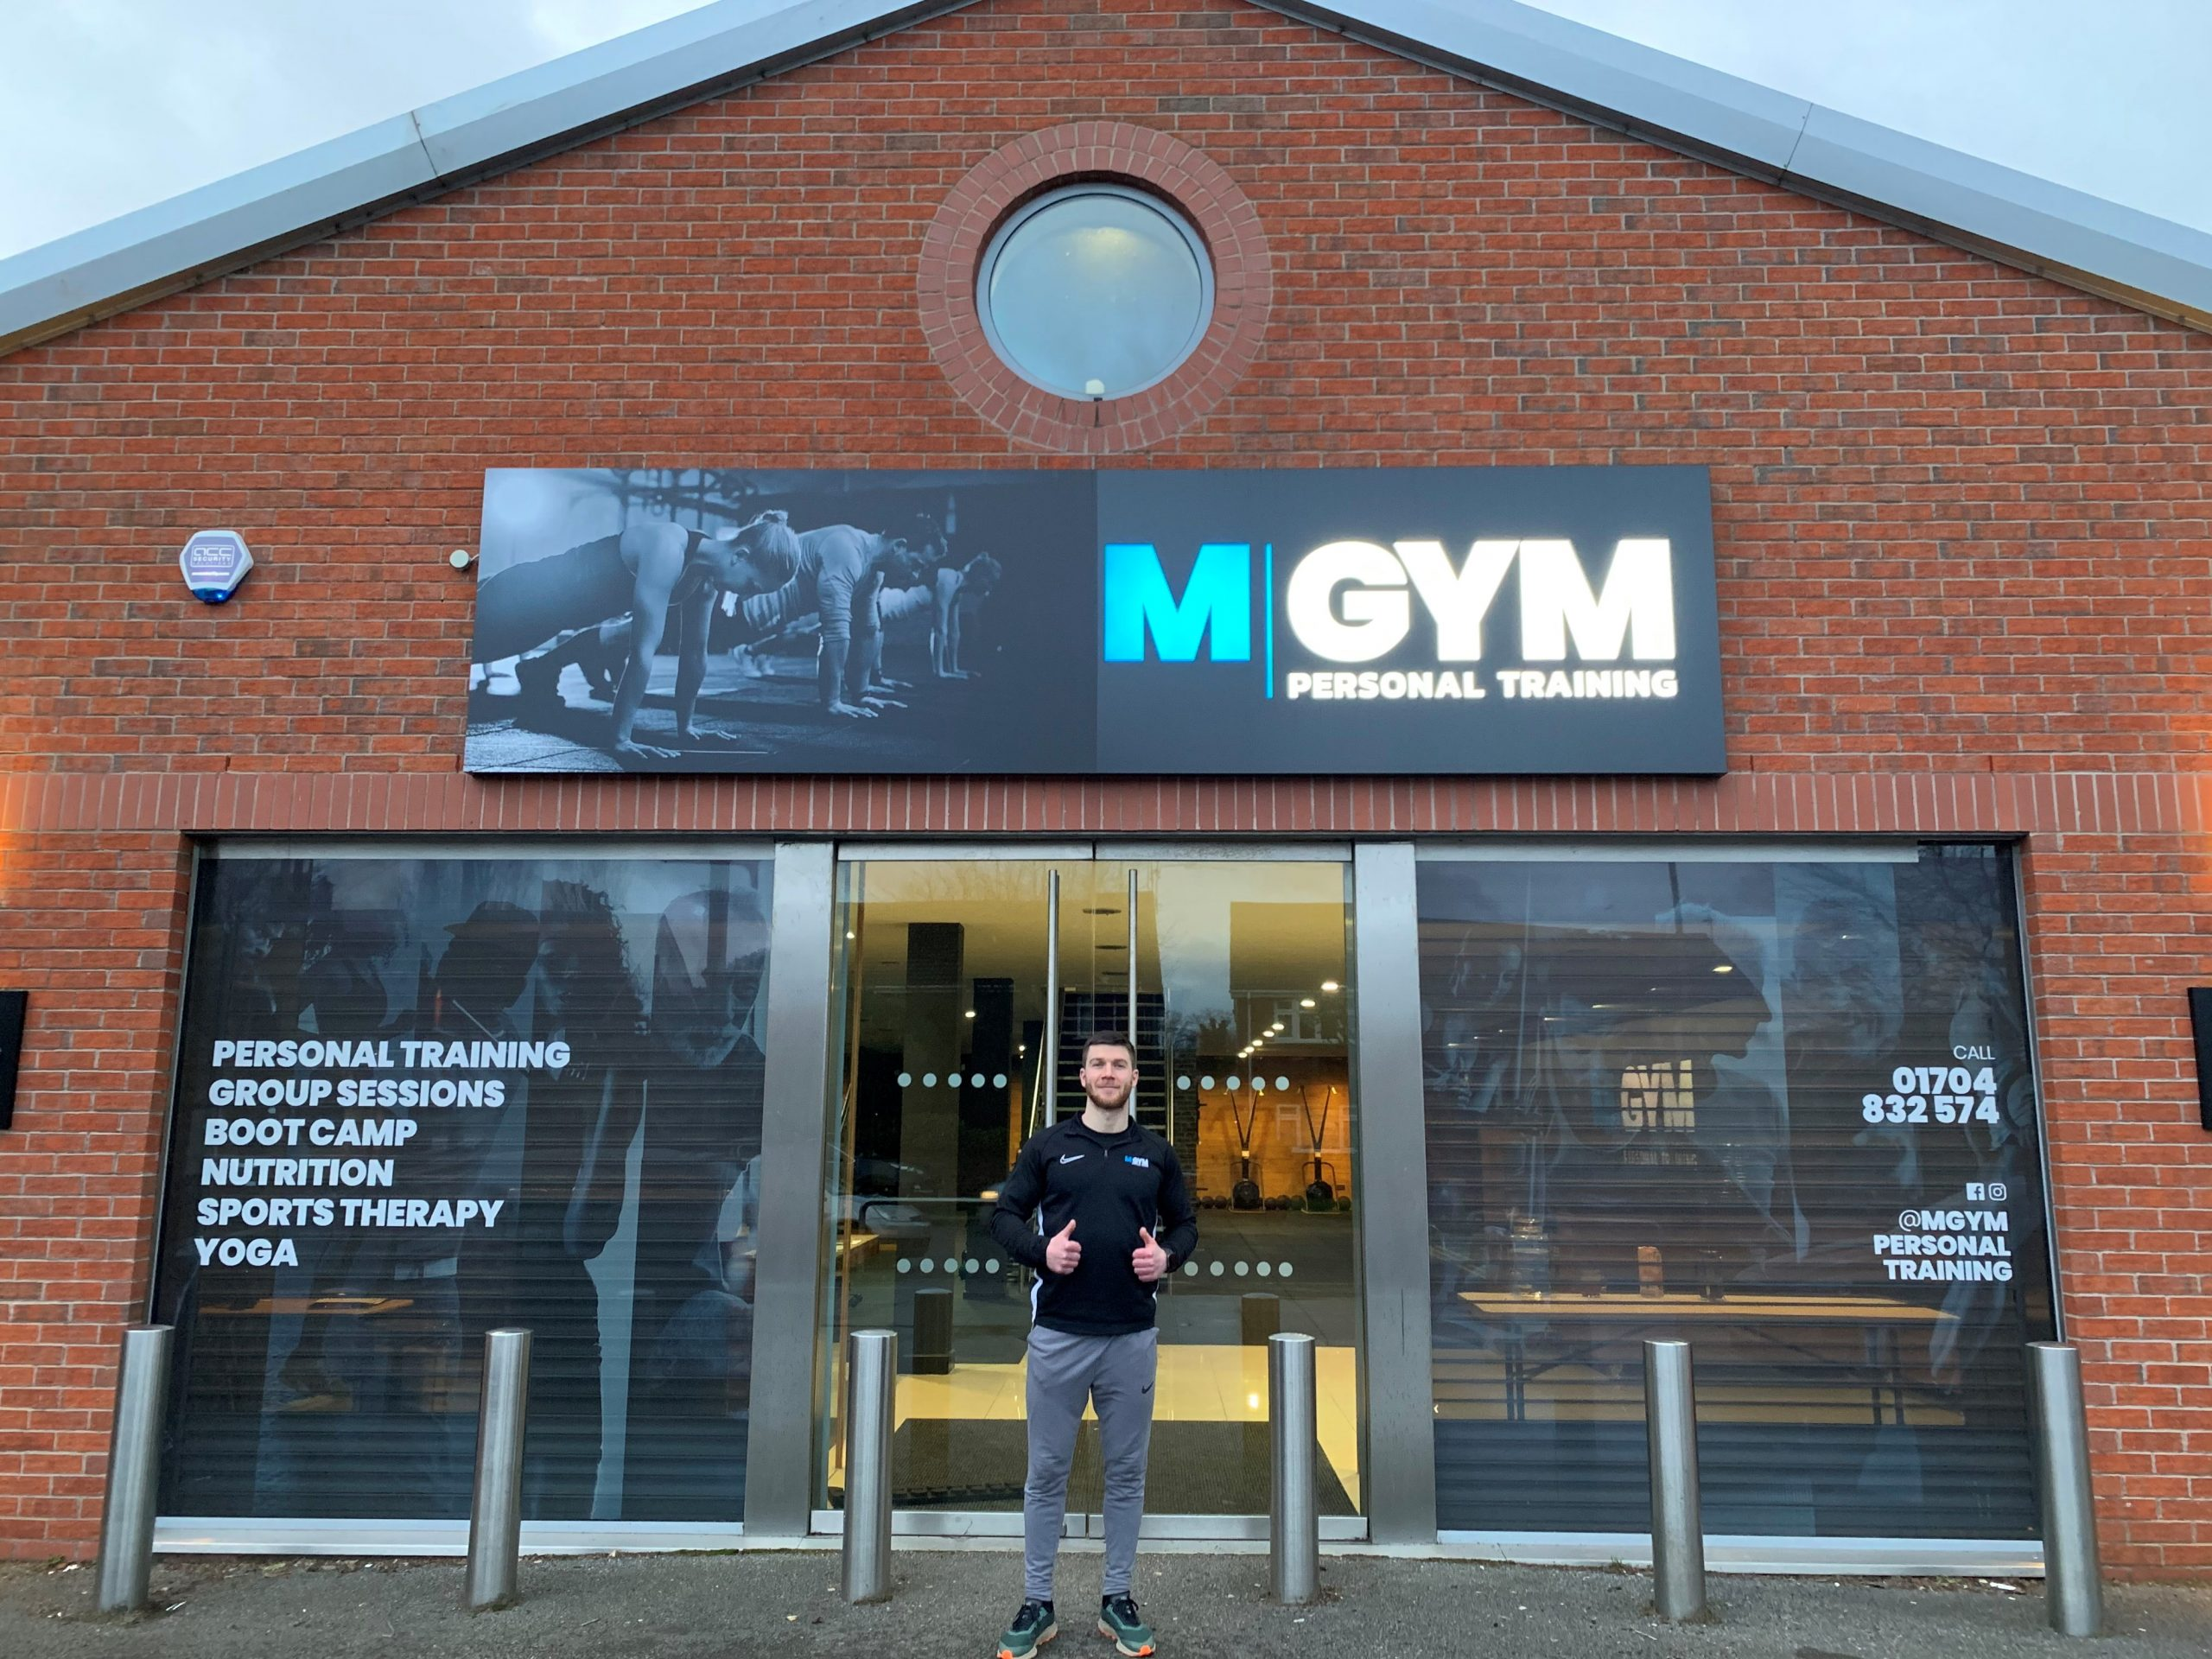 HEALTHY PROFITS SEE EXPANSION OF FORMER FOOTBALLER'S FORMBY FITNESS  EMPIRE FOLLOWING FUNDING PACKAGE